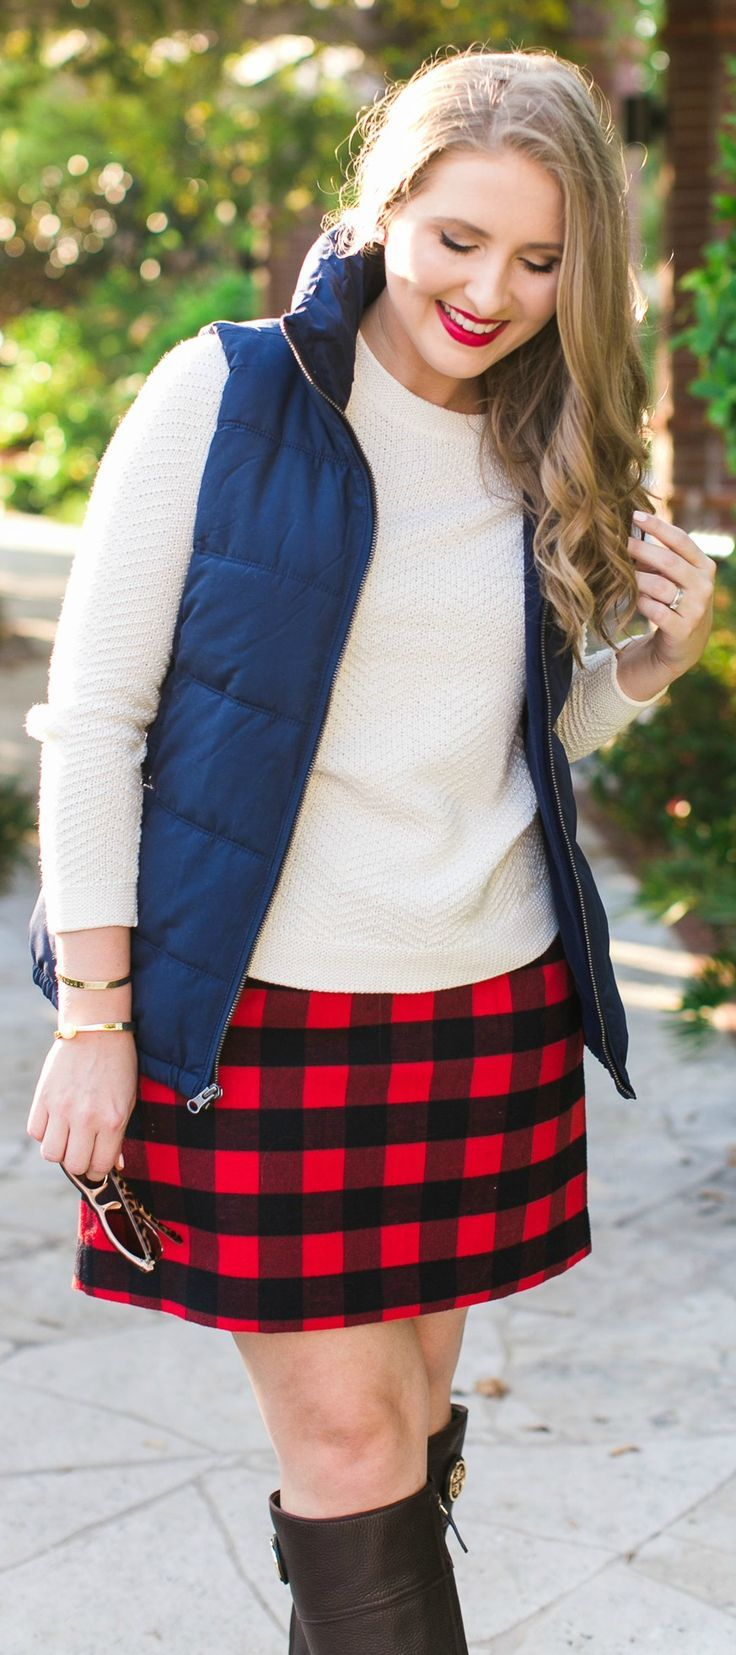 Preppy fall outfit idea + the best Gap, Banana Republic, Athleta, and Old Navy Black Friday and Cyber Monday deals + learn how to get $20 back when you spend $50 at Gap Inc stores with the Marriott Rewards Premier credit card. #marriottcard sponsored by C